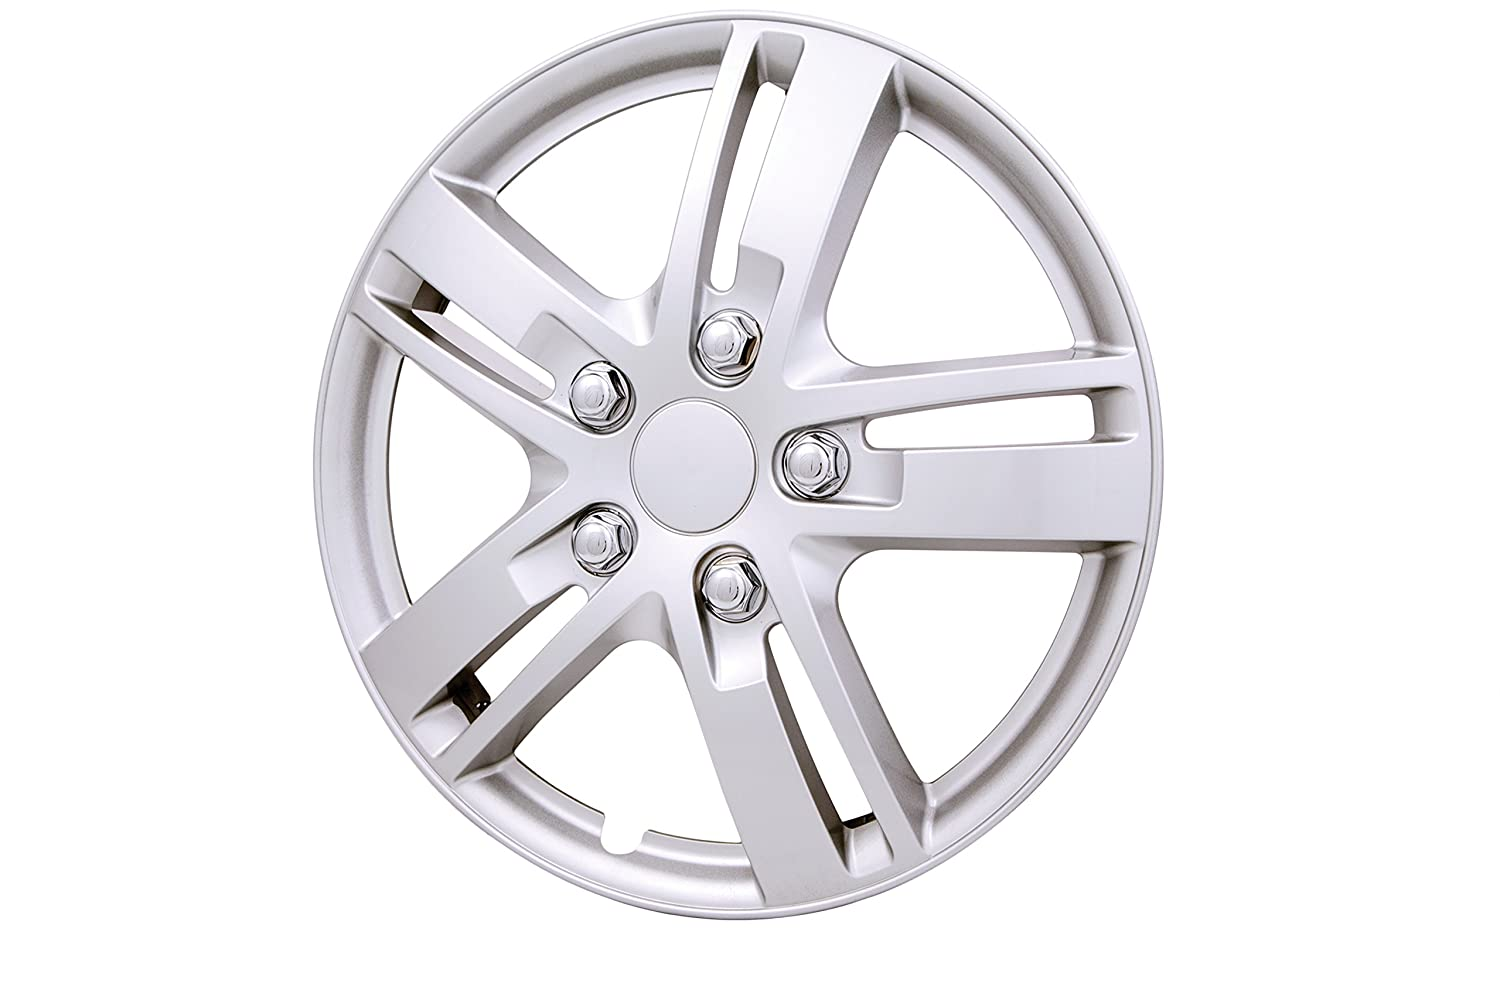 4 pieces TABOGA ABS Silver Wheel Covers R14 14 inch Hubcaps CAR